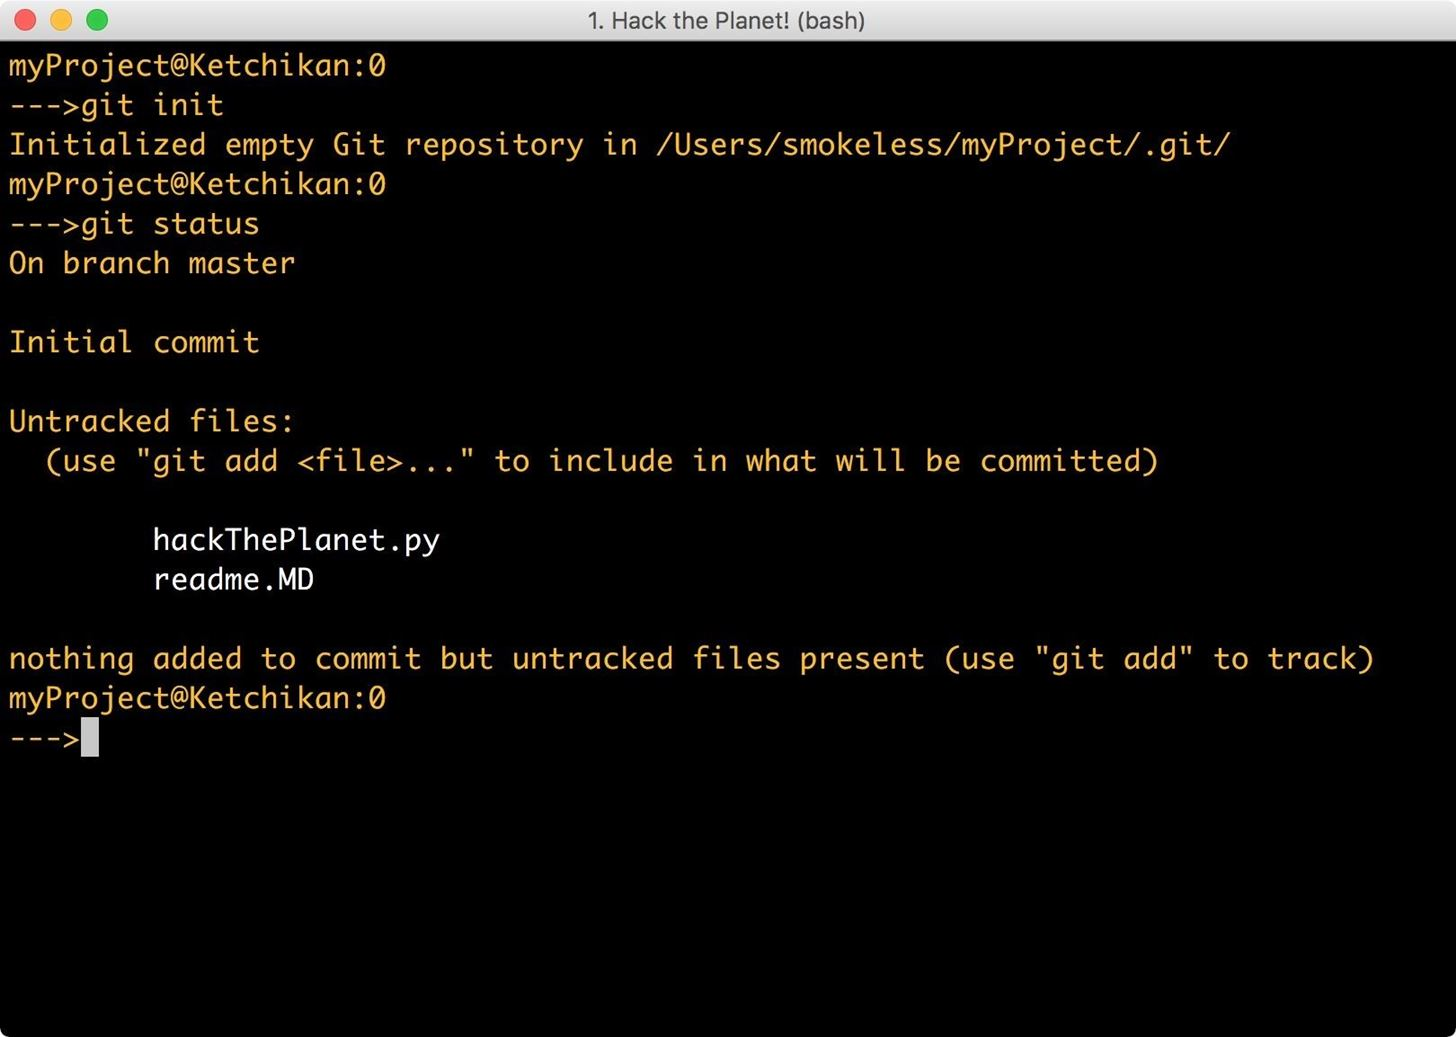 Mac for Hackers: How to Use Git to Clone, Compile & Refine Open-Source Hacking Tools